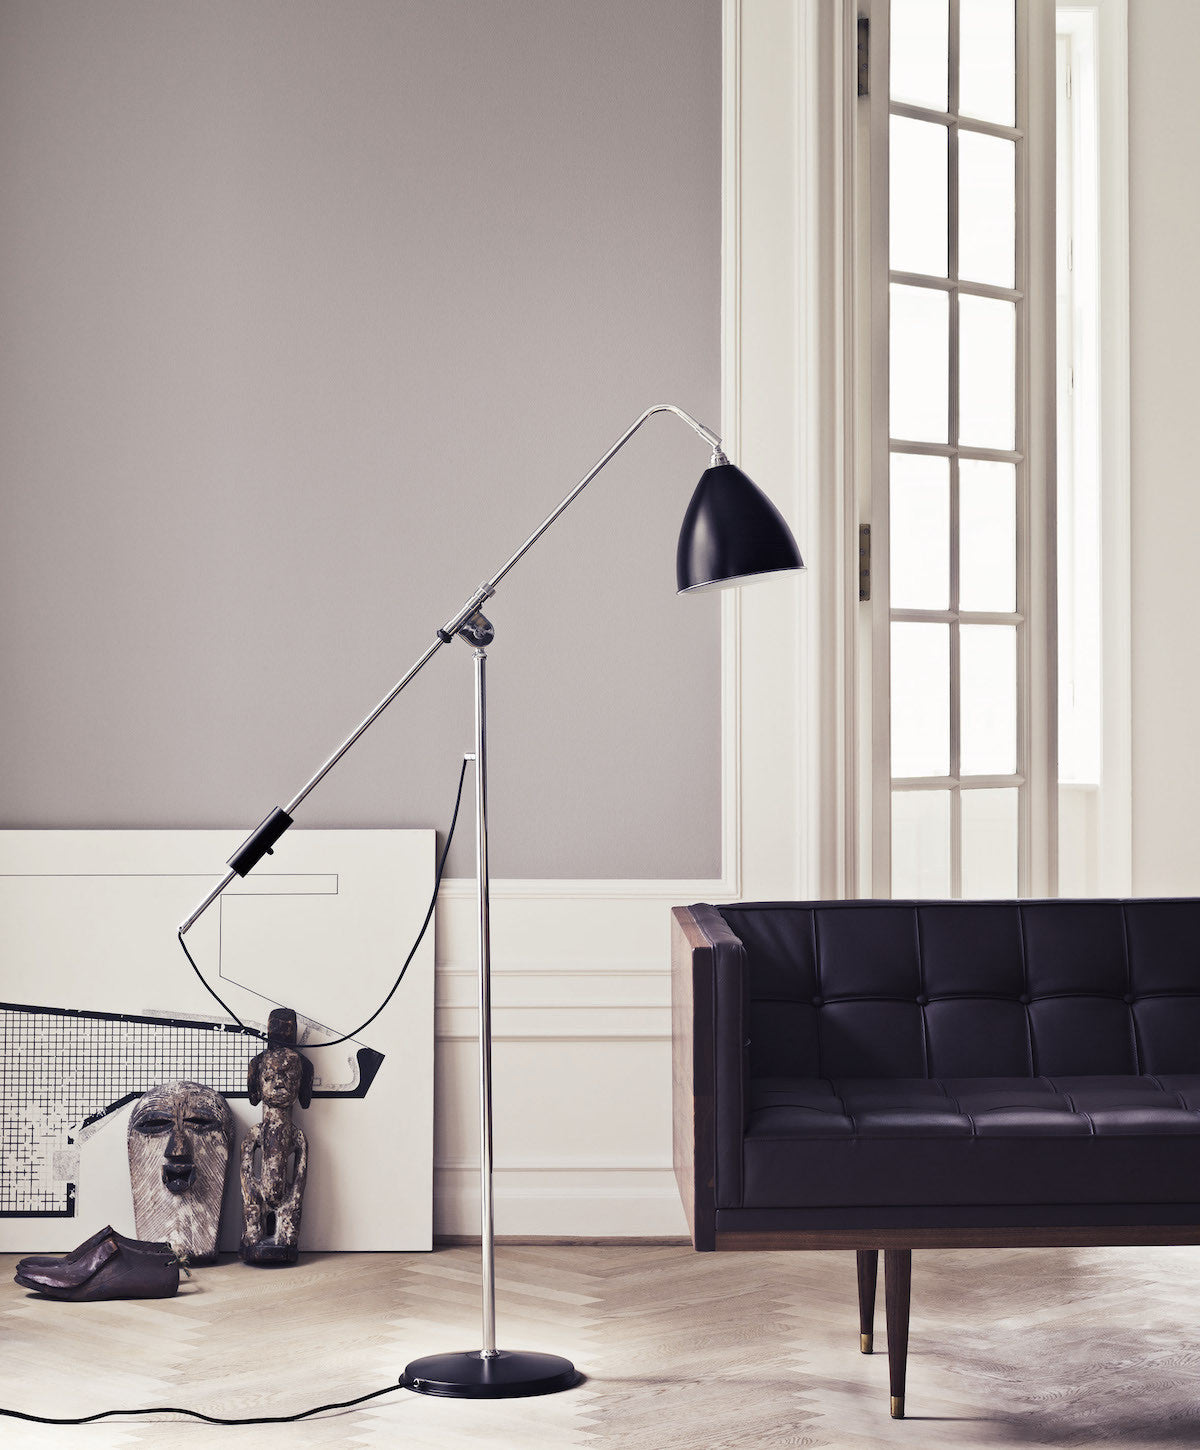 Bestlite BL4 Floor Lamp - Ø21 - Brass Base, Matt White fra GUBI